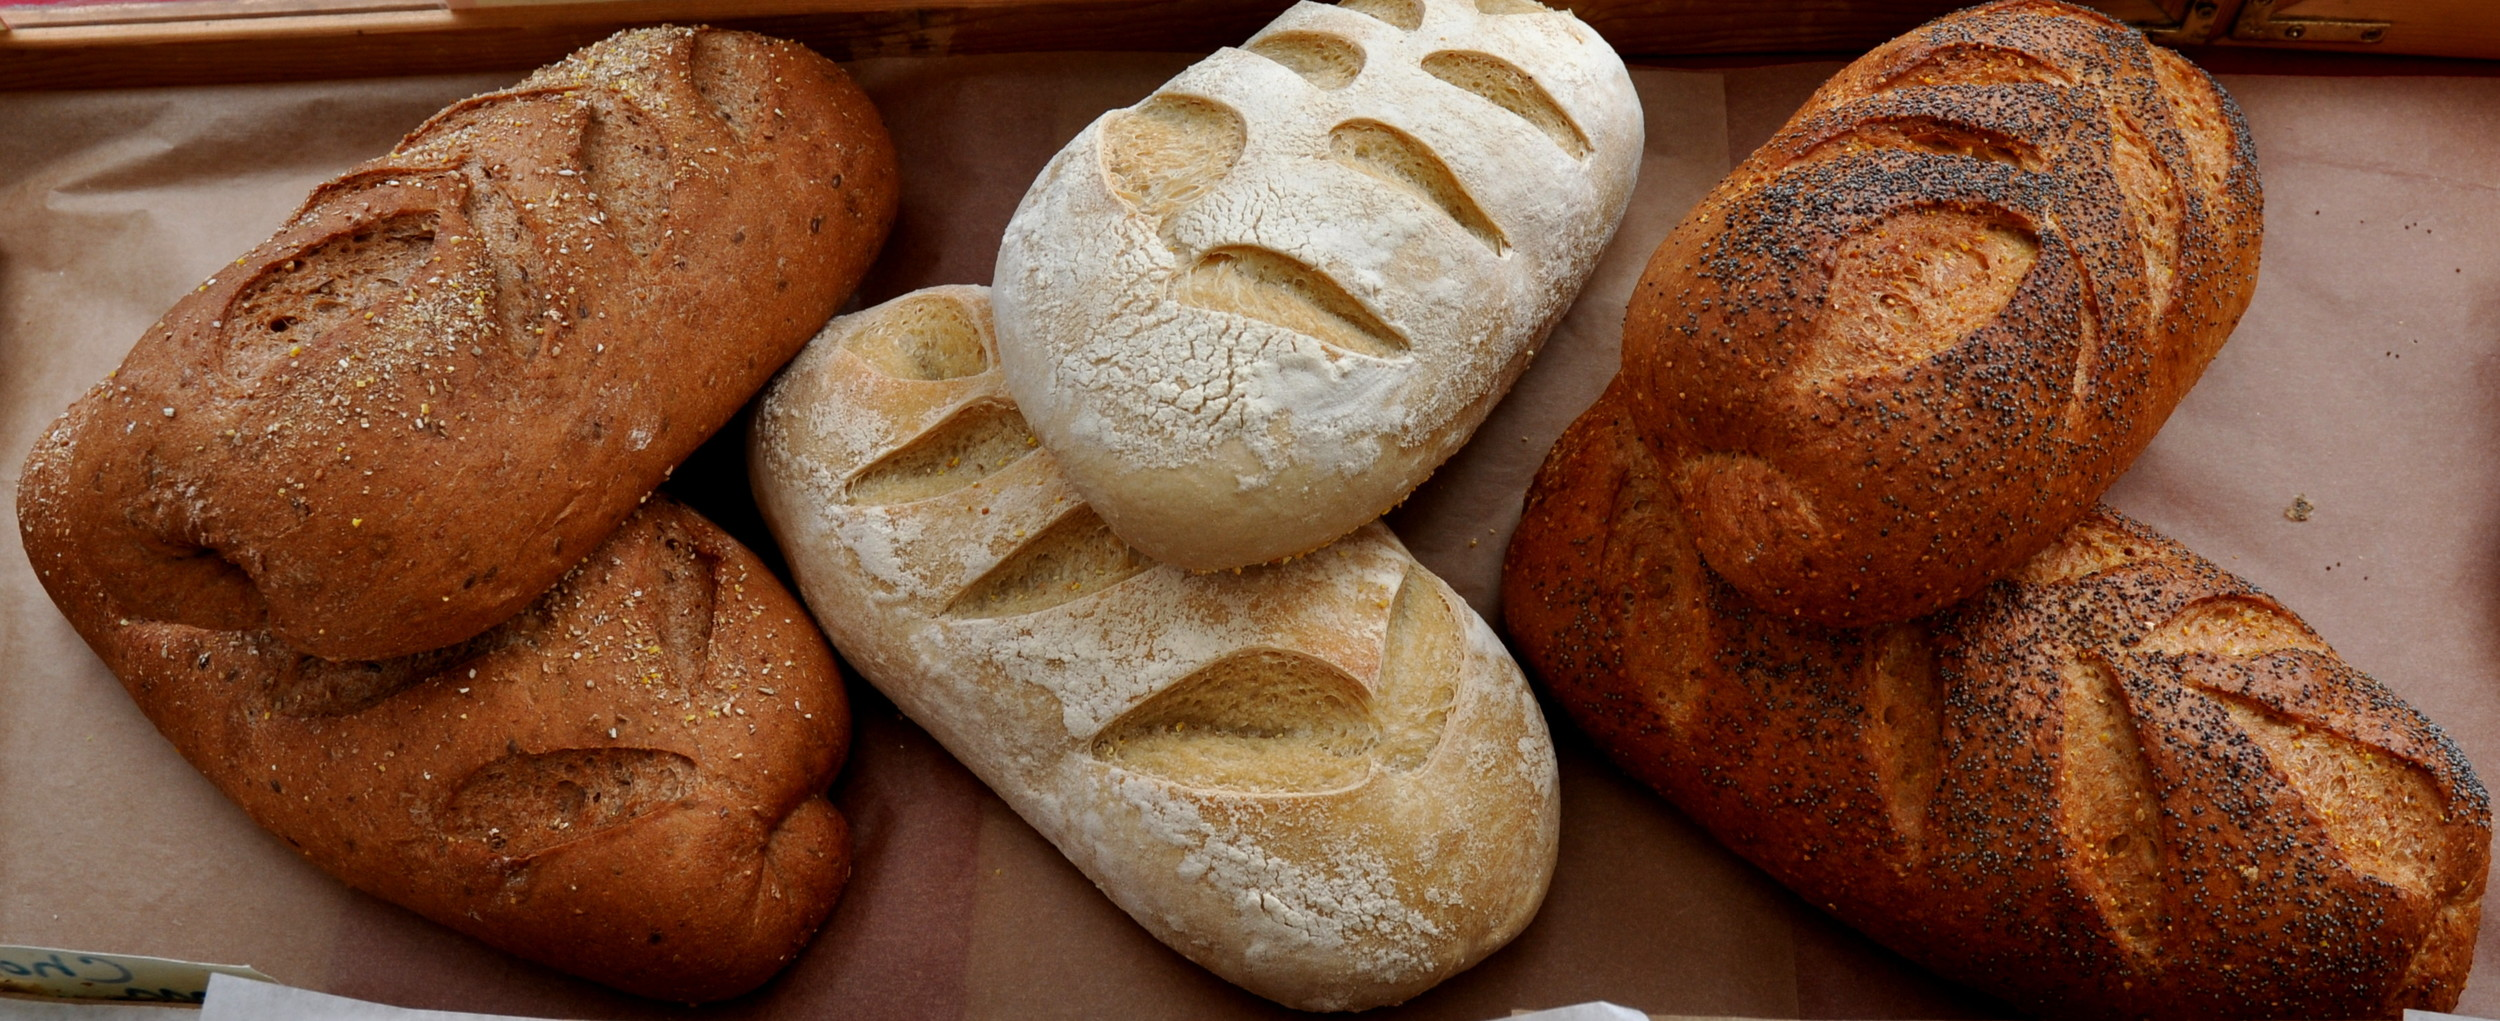 Artisan bread loaves from Grateful Bread Bakery. Photo copyright 2013 by Zachary D. Lyons.